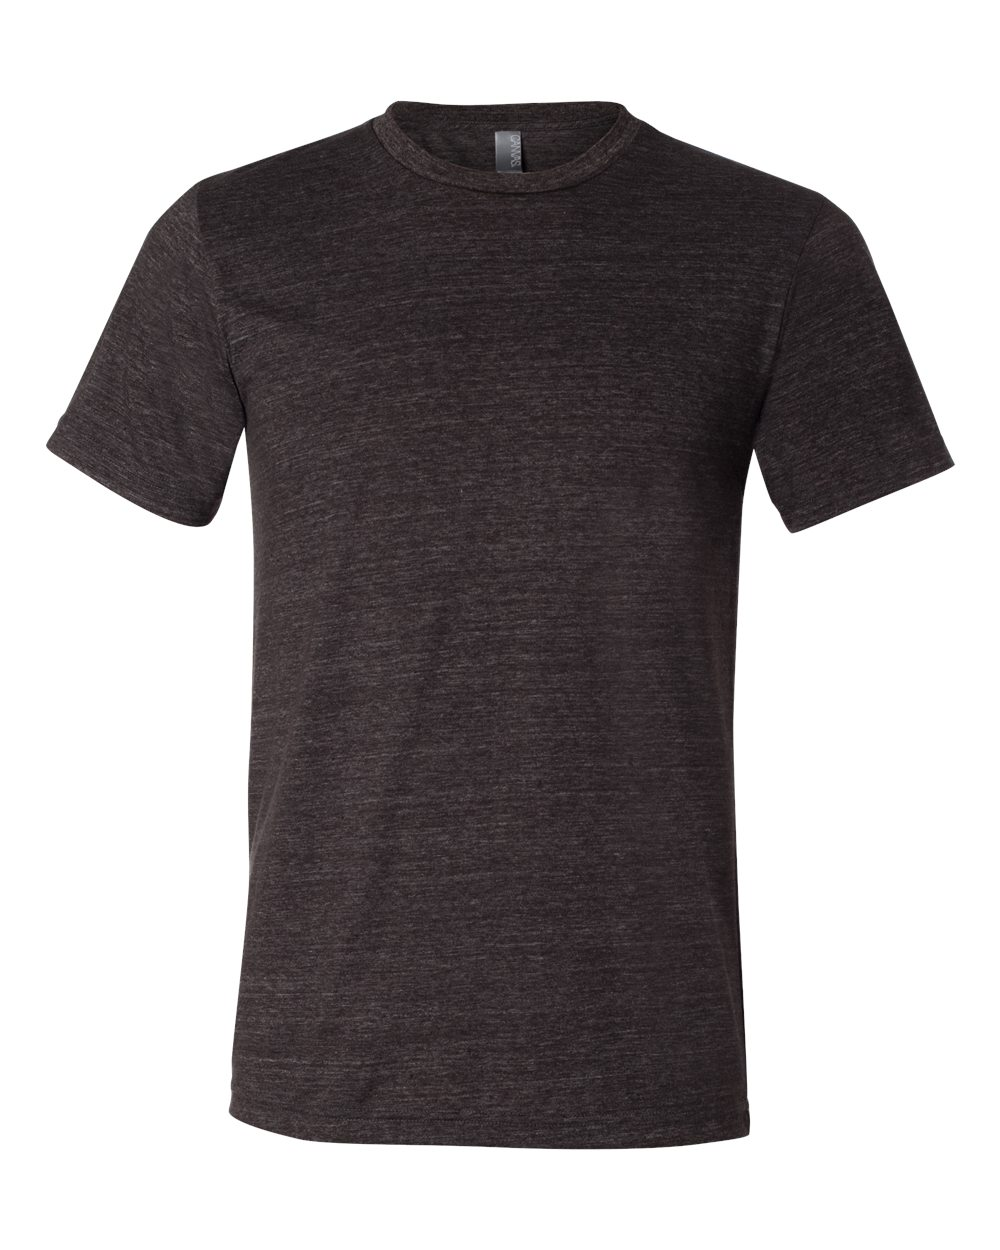 click to view Charcoal-Black Triblend